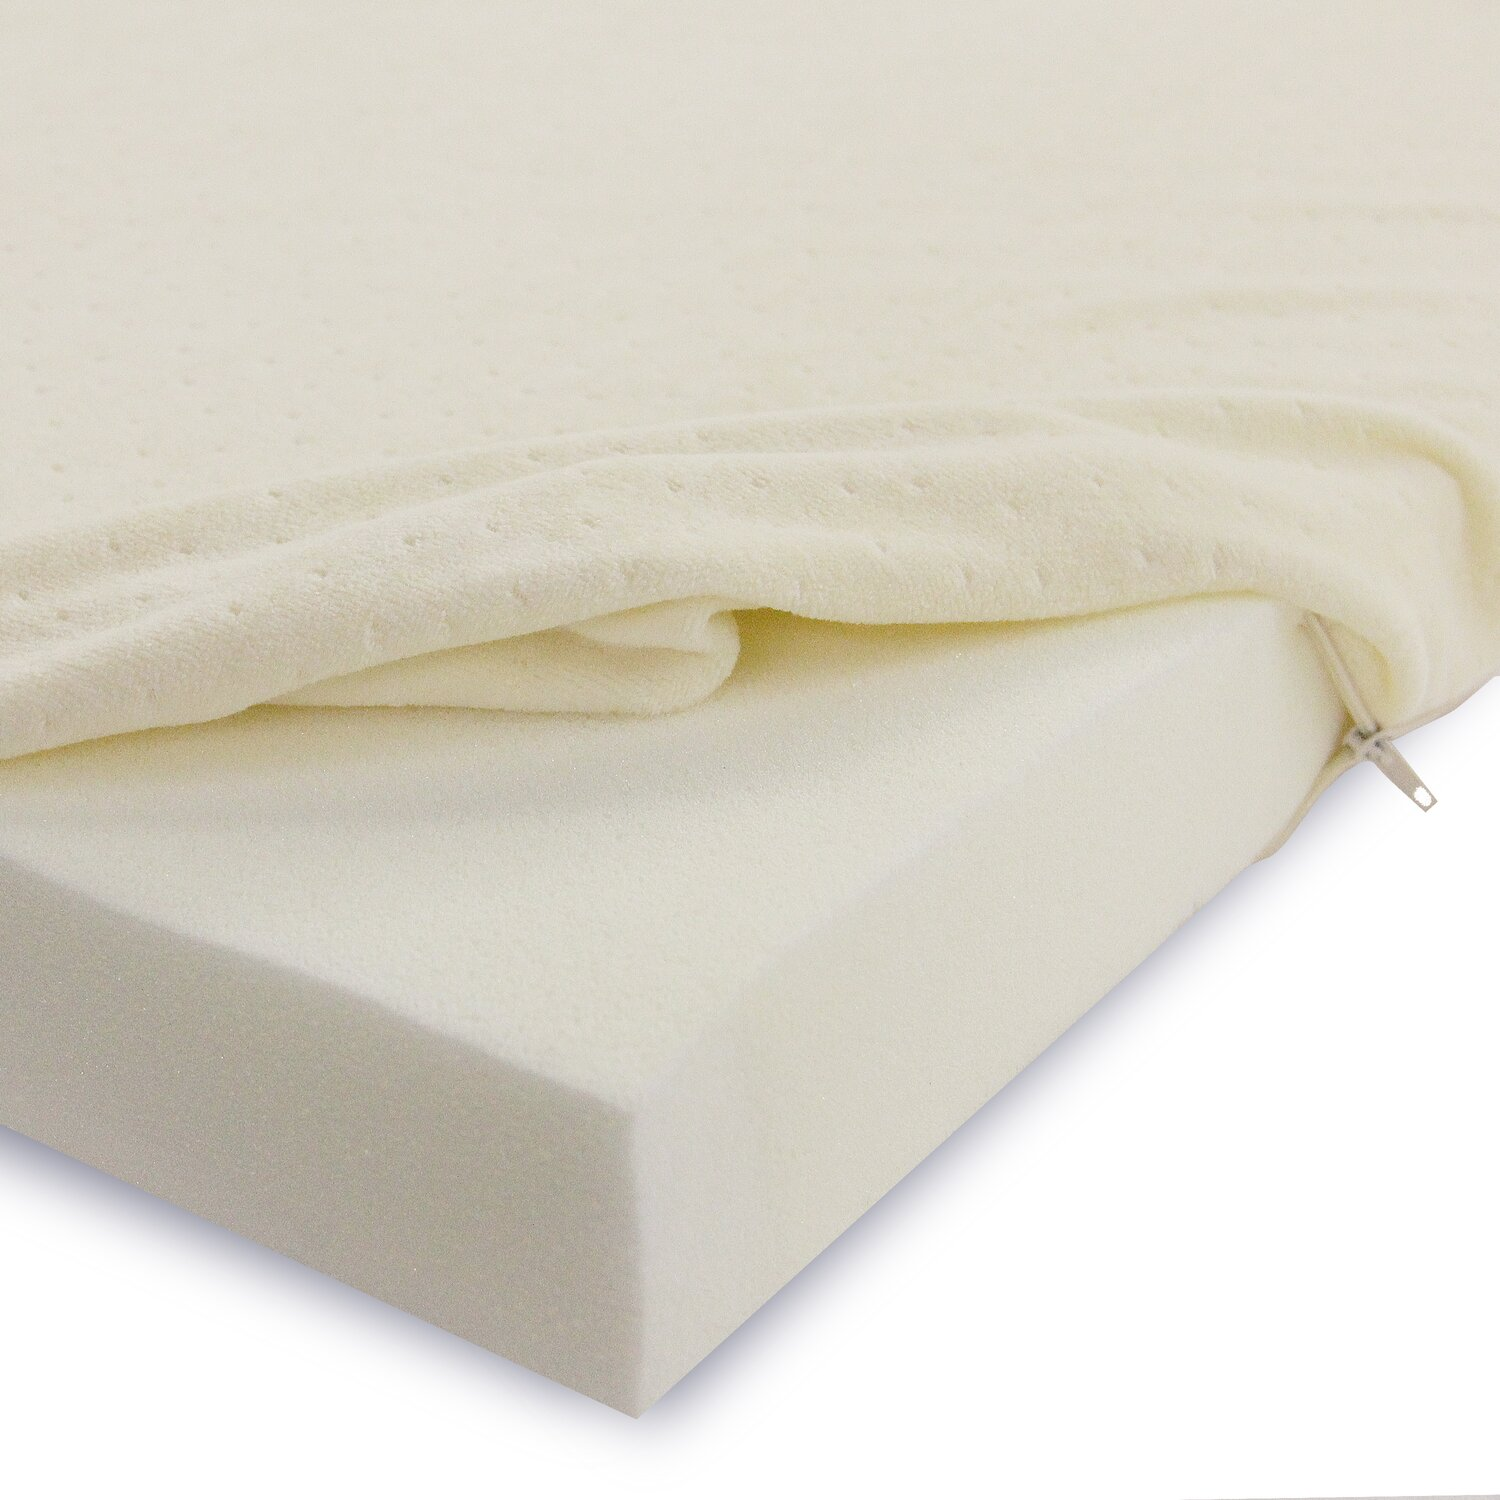 Two Shredded Pillows With This Soft Sleeper 5.5 Twin 4 Inch Memory Foam Mattress Pad Bed Topper Overlay, Soft... Compare Prices